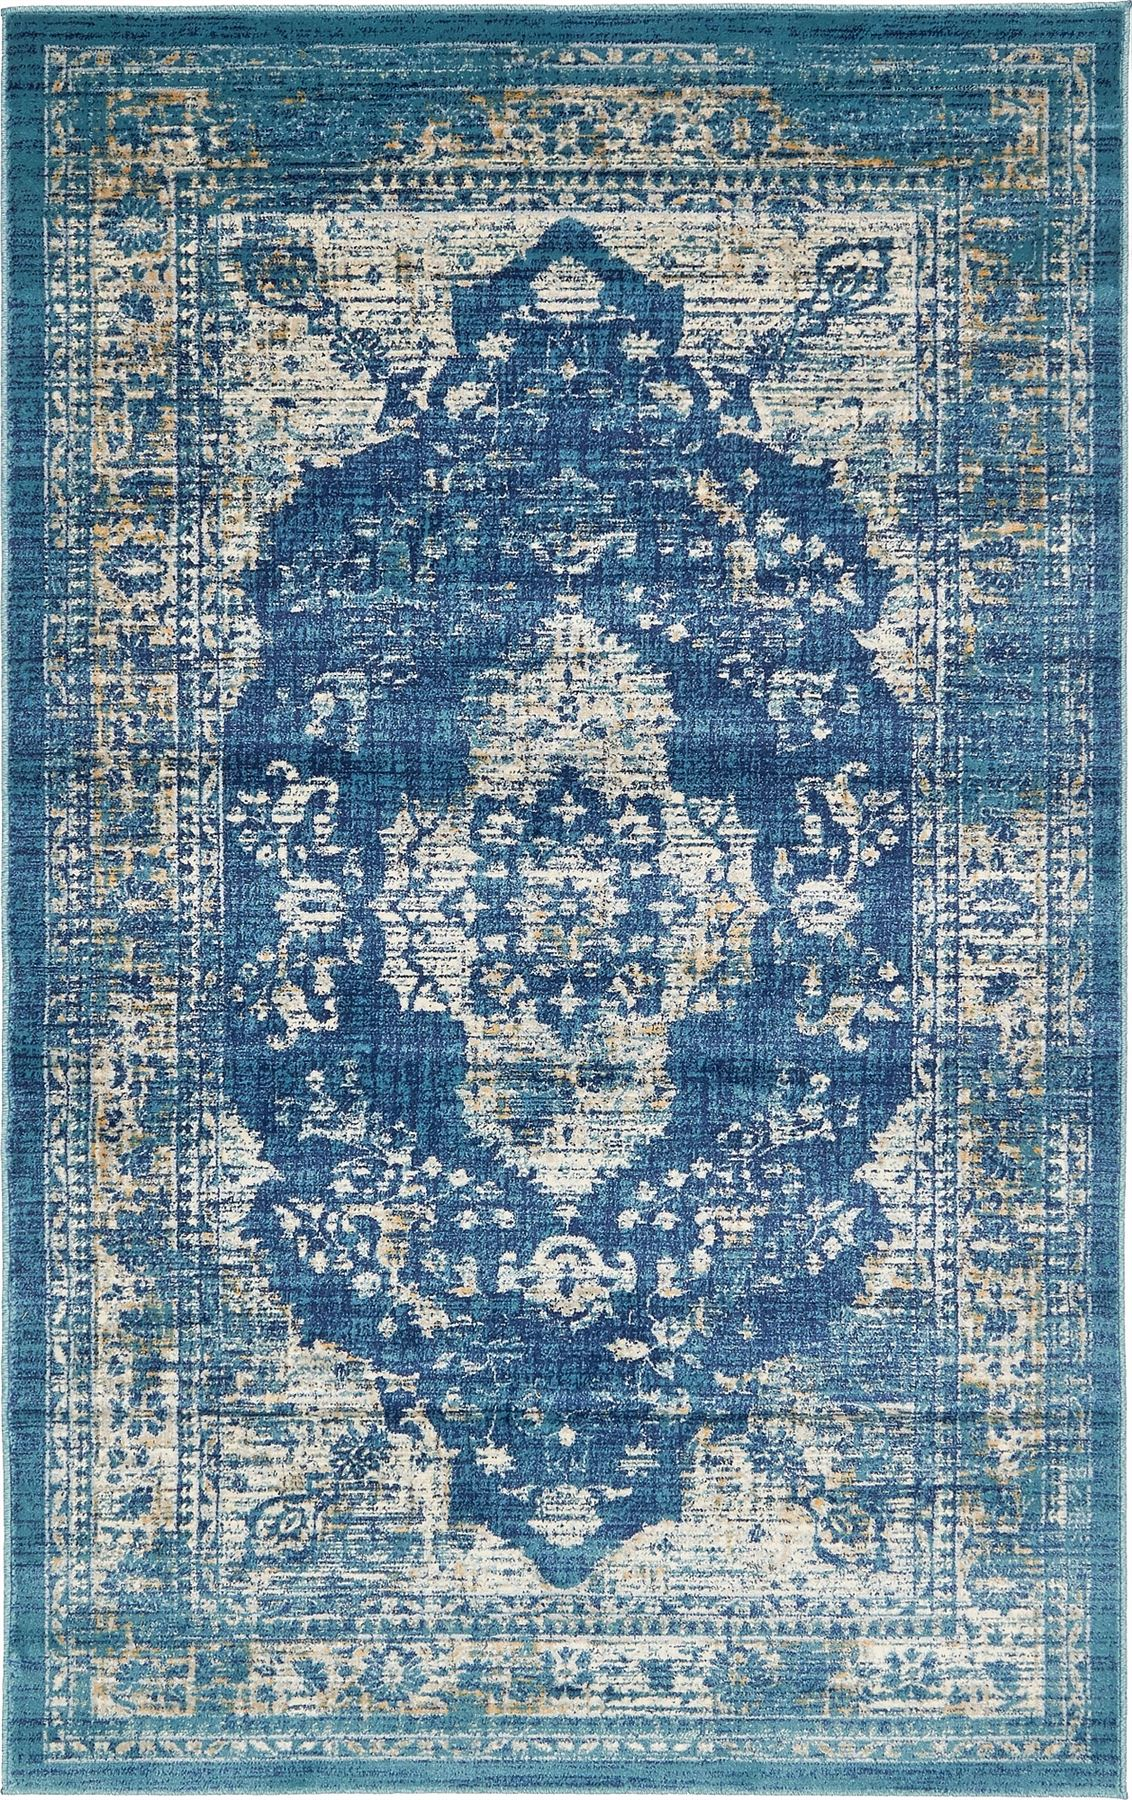 Modern Rug Oriental Carpets Contemporary Rugs New Floor